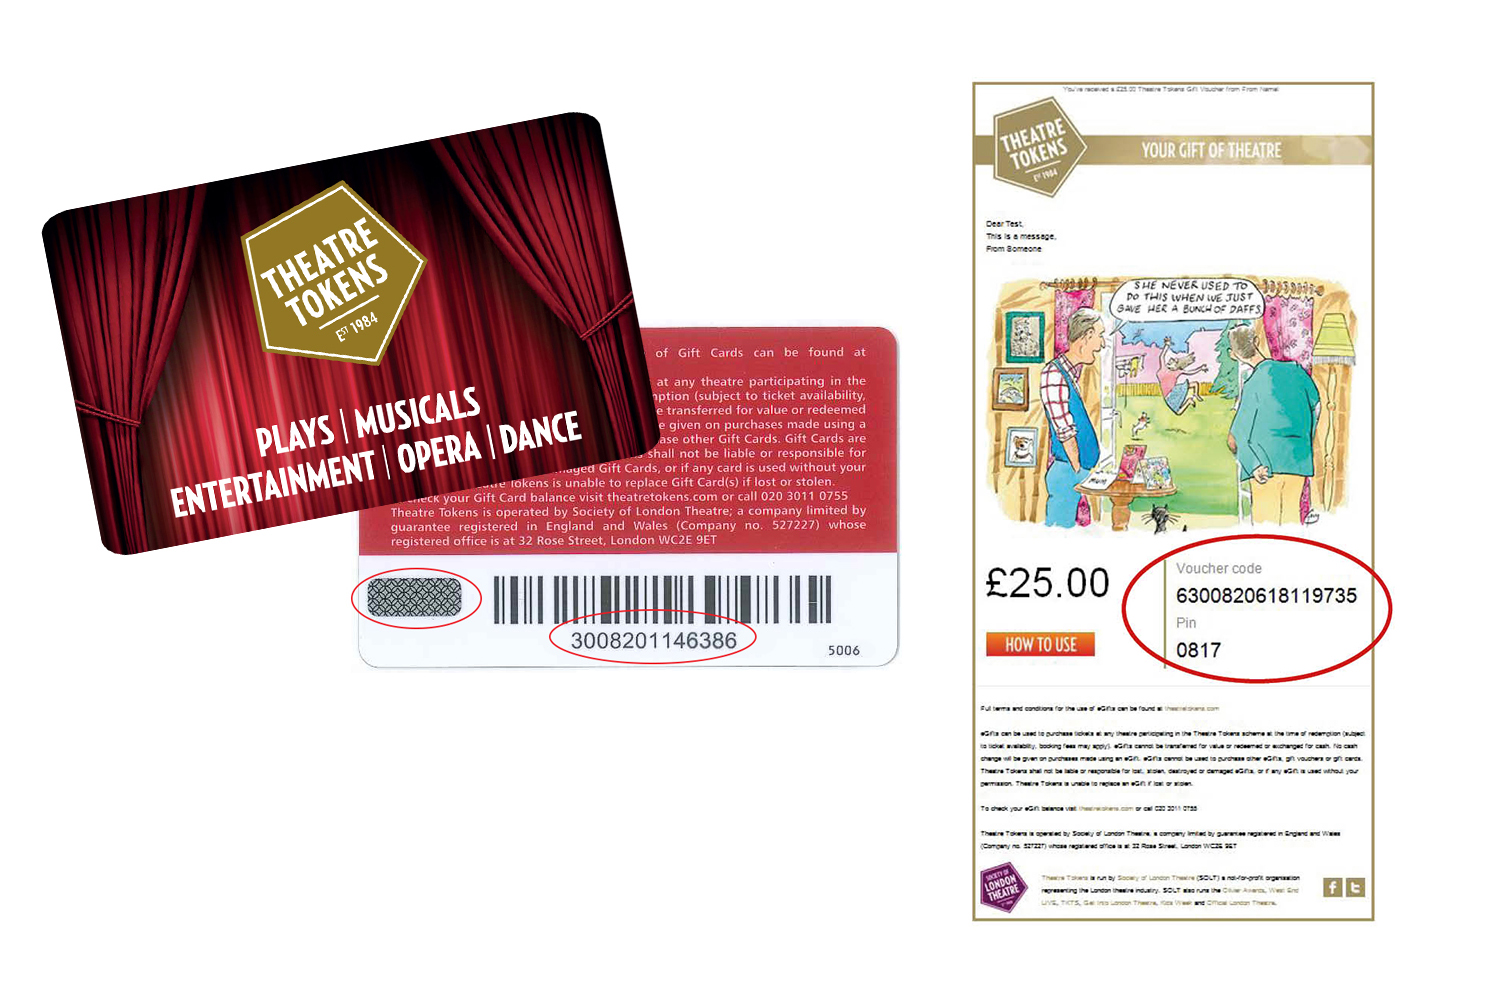 Theatre Tokens Gift Card and eGift